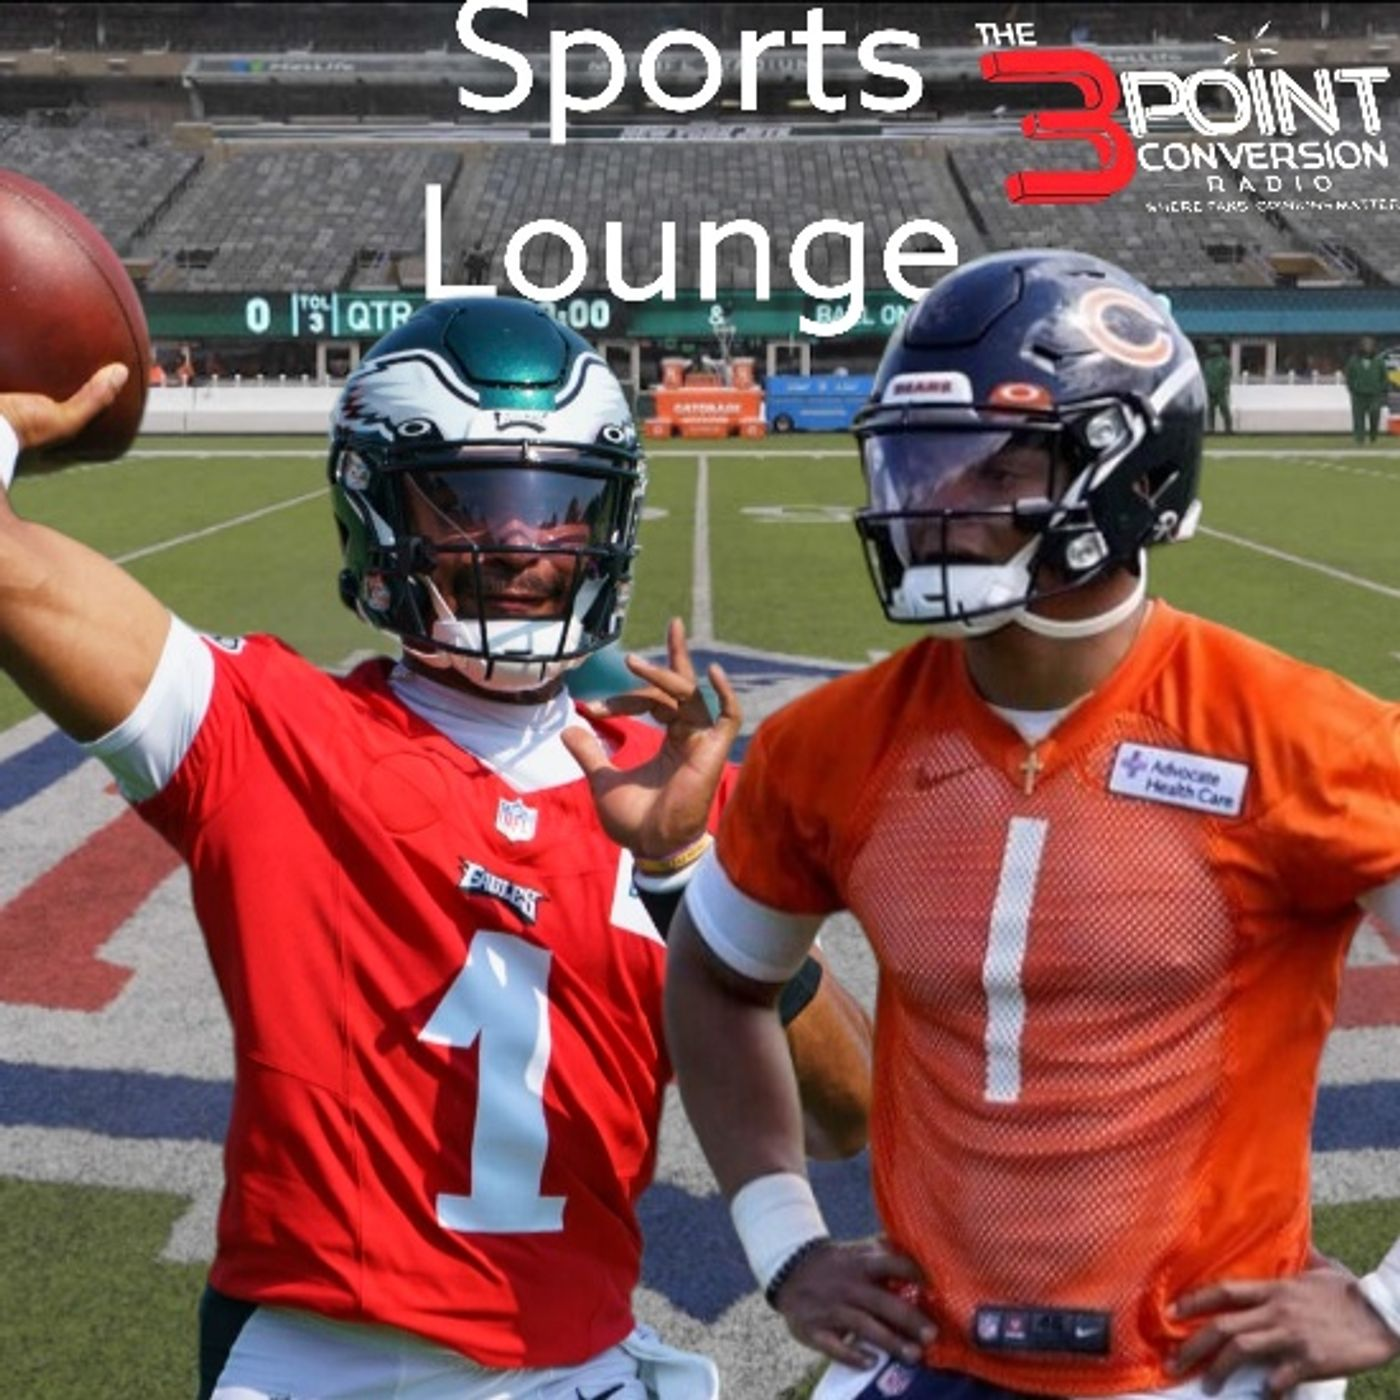 The 3 Point Conversion Sports Lounge - NBA Free Agency, Olympics Review, NFL Is Back, Giants or Dodgers,